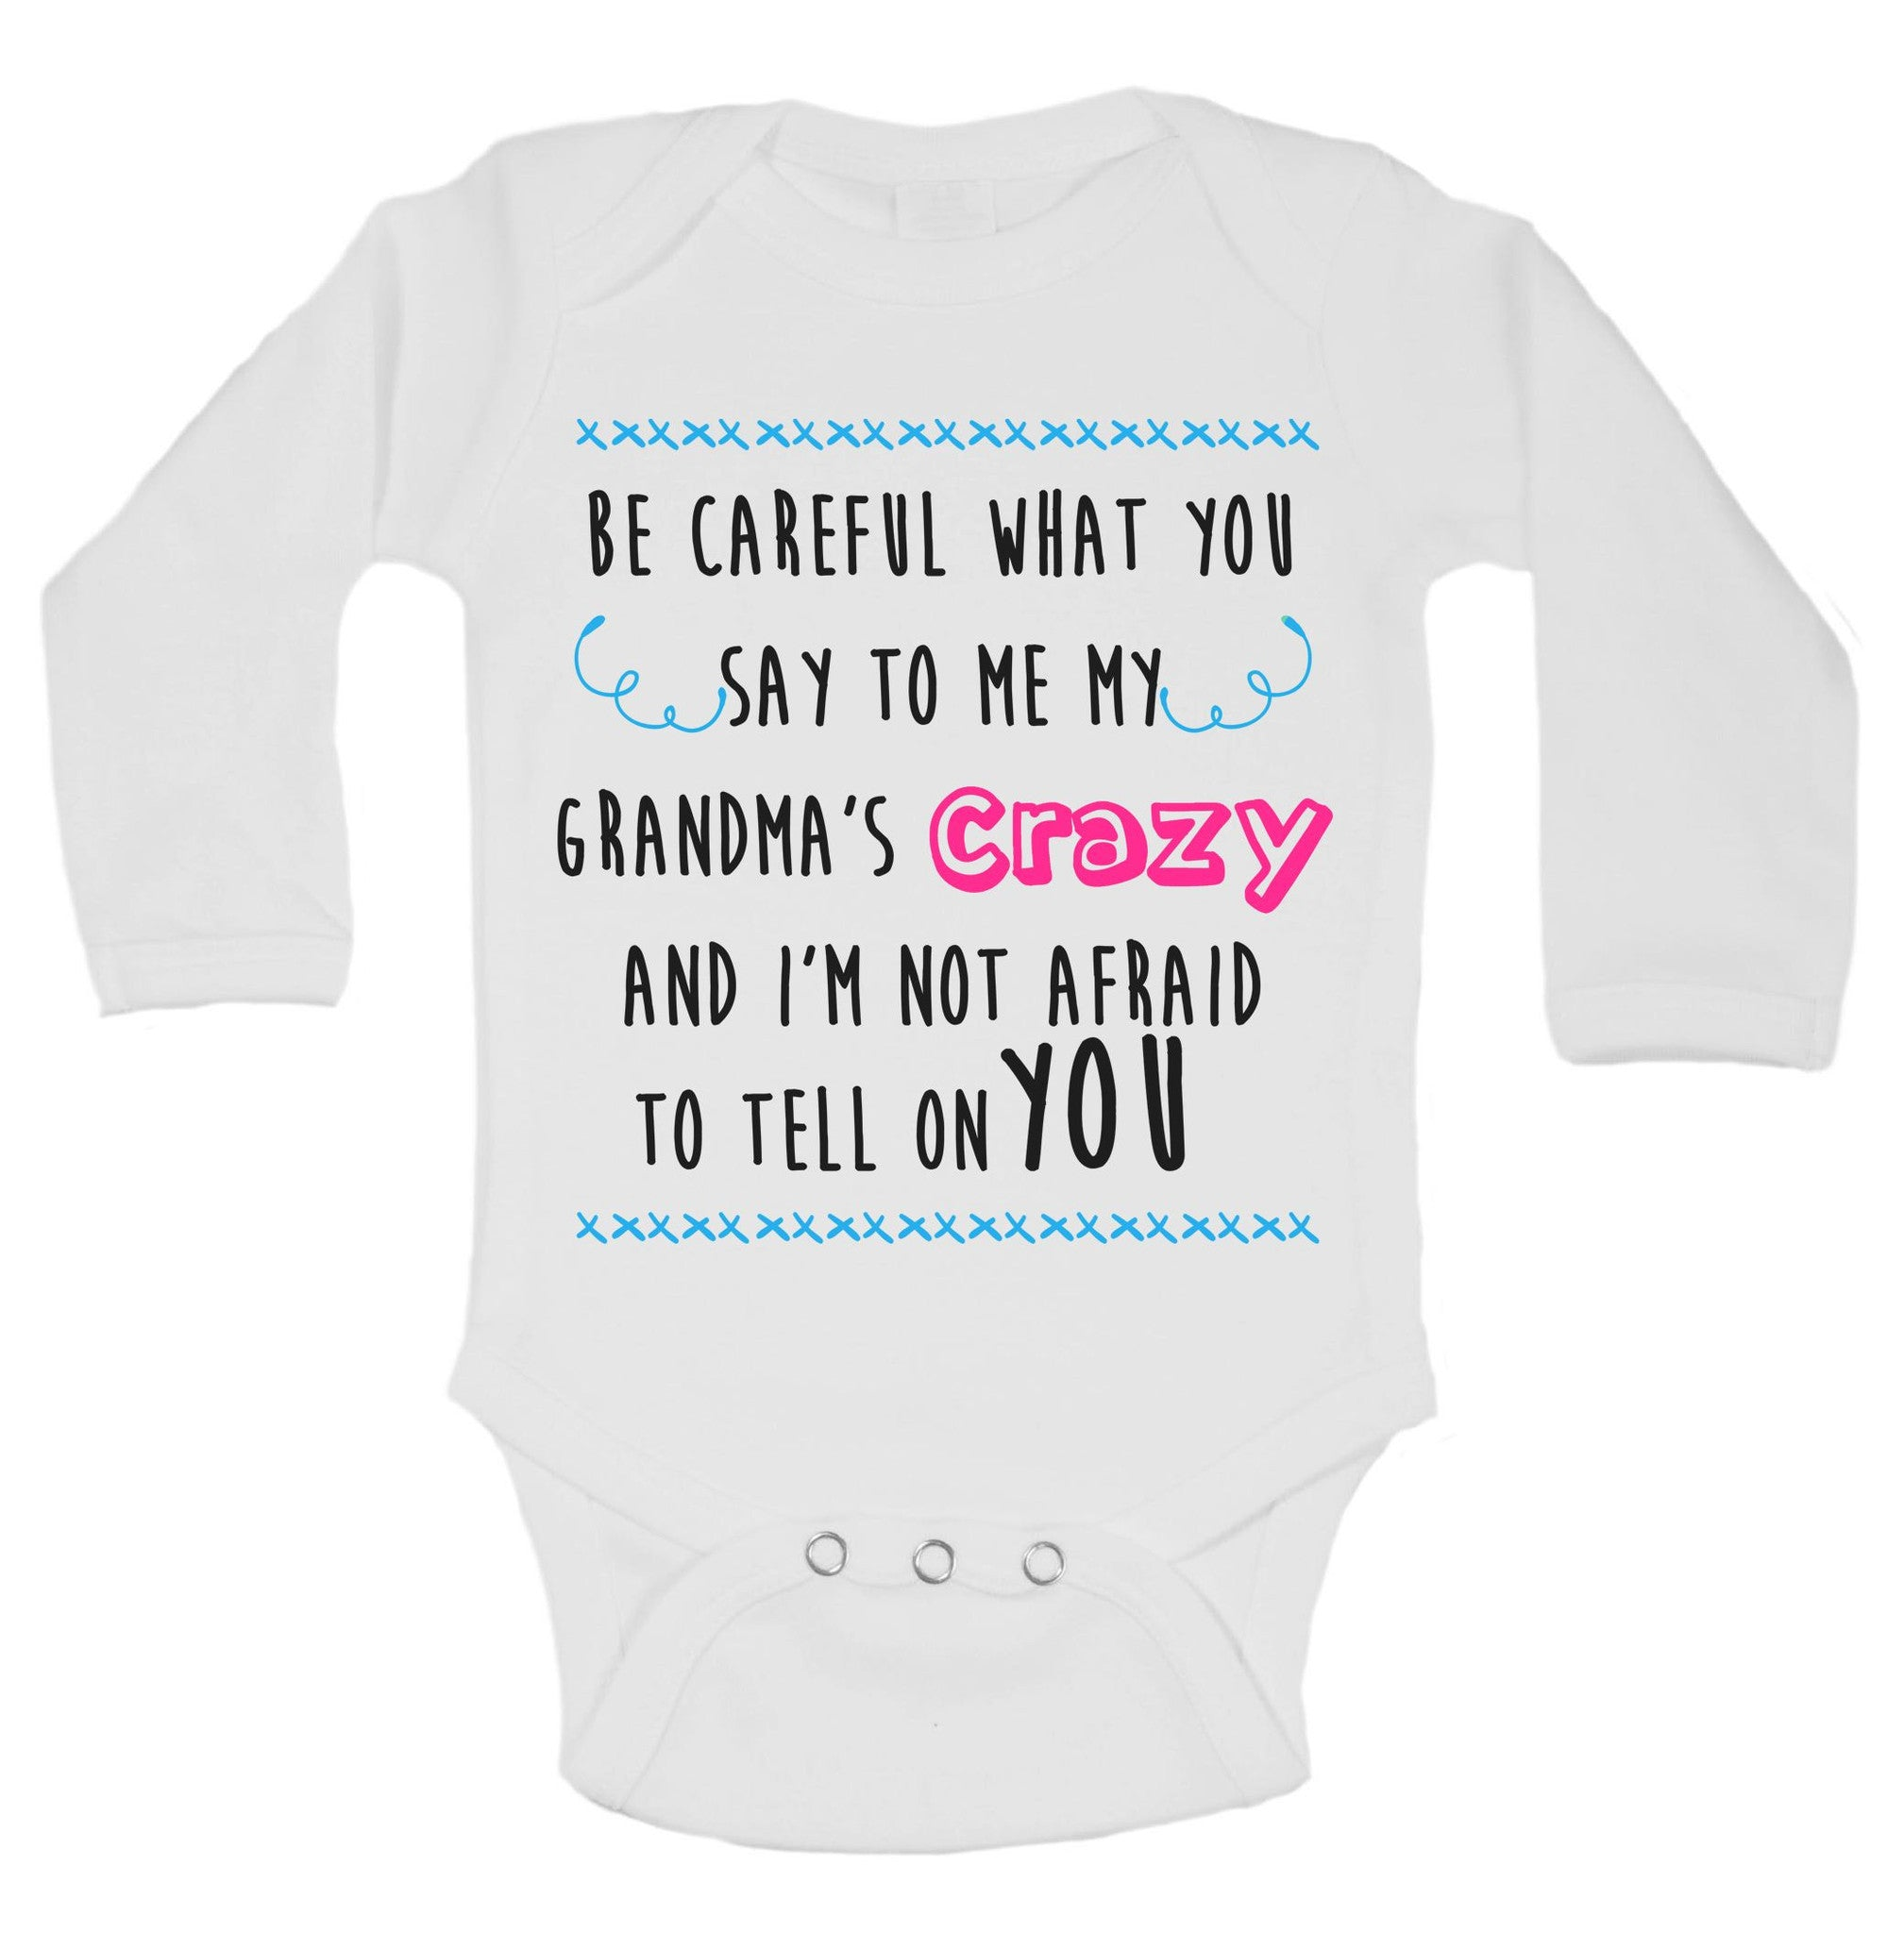 Be Careful What You Say To Me My Grandma's Crazy And I'm Not Afraid To Tell On You Funny Kids Onesie - B125 - Funny Shirts Tank Tops Burnouts and Triblends  - 2